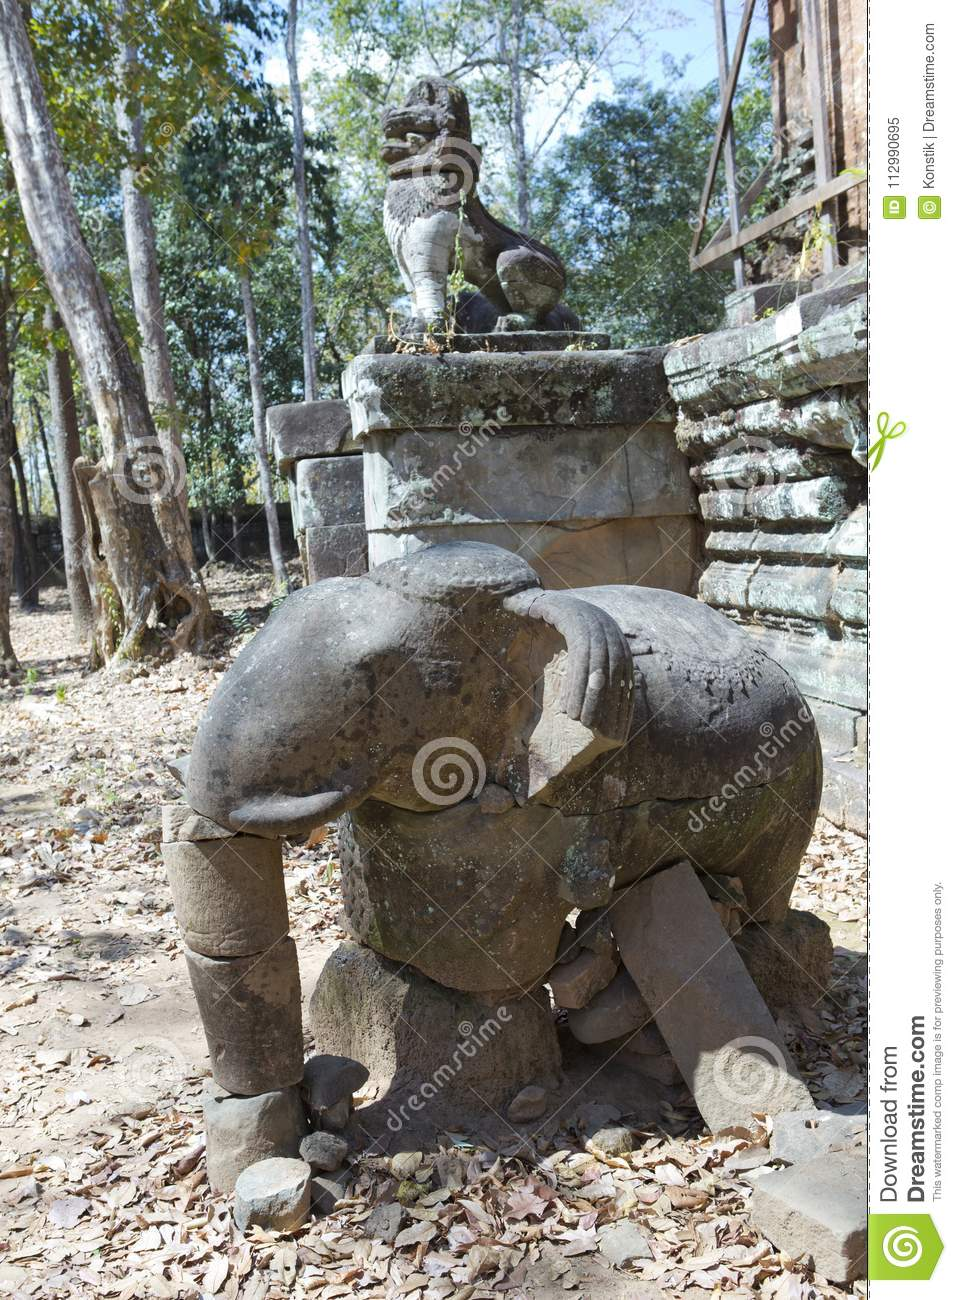 Prasat Damrei means Elephant temple ruin in the Koh Ker temple complex, Siem Reap, Cambodia